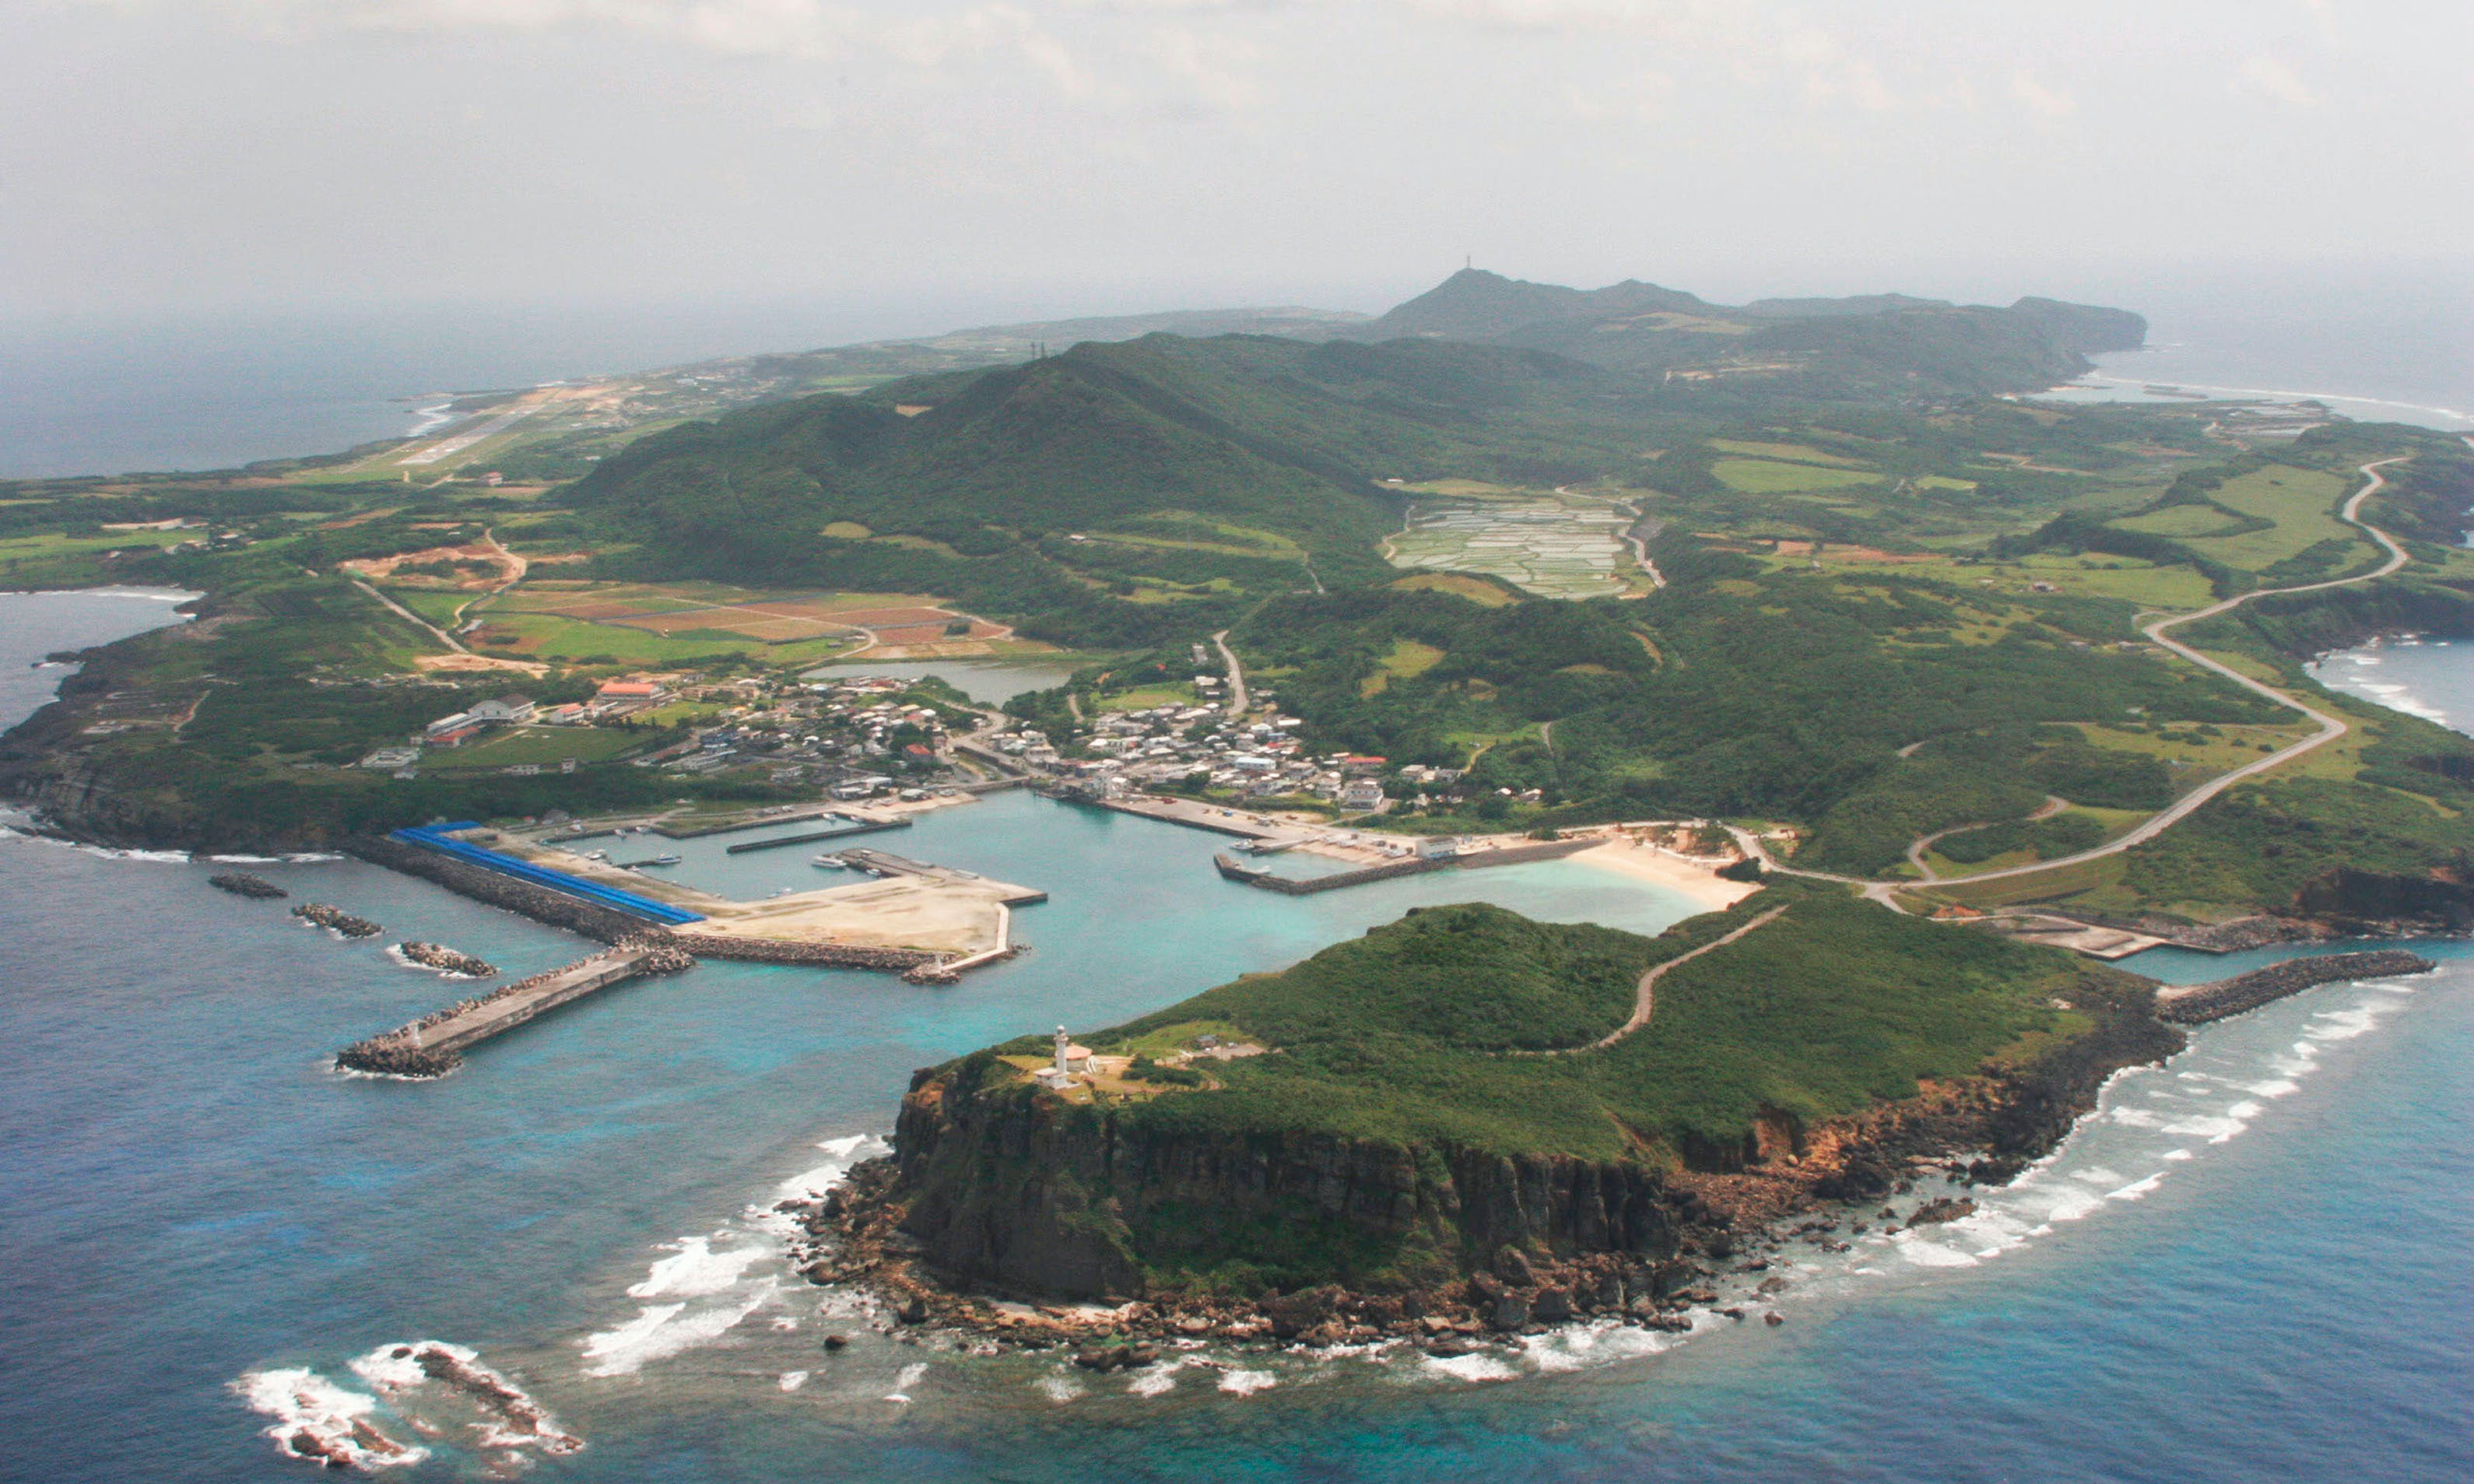 ANALYSIS: China's Naval Power Calls for 4th and 5th Island Chain Defense